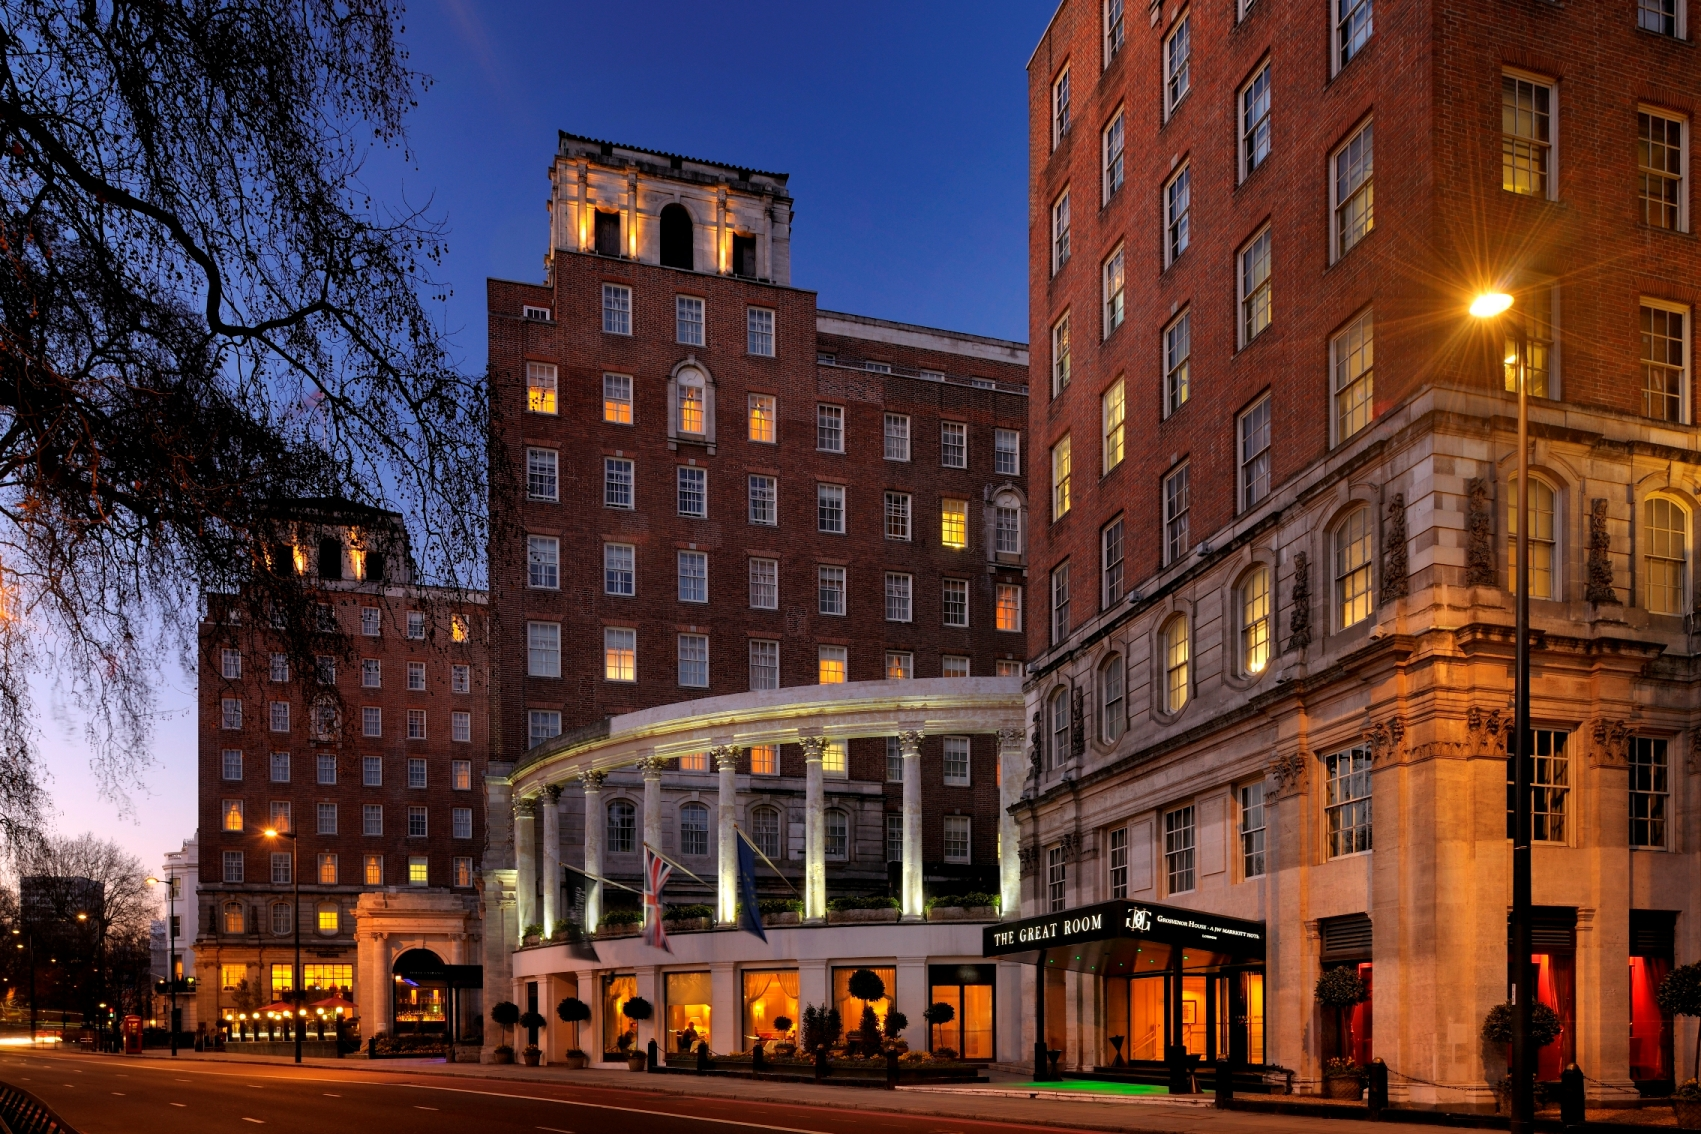 How Many Hotels In London